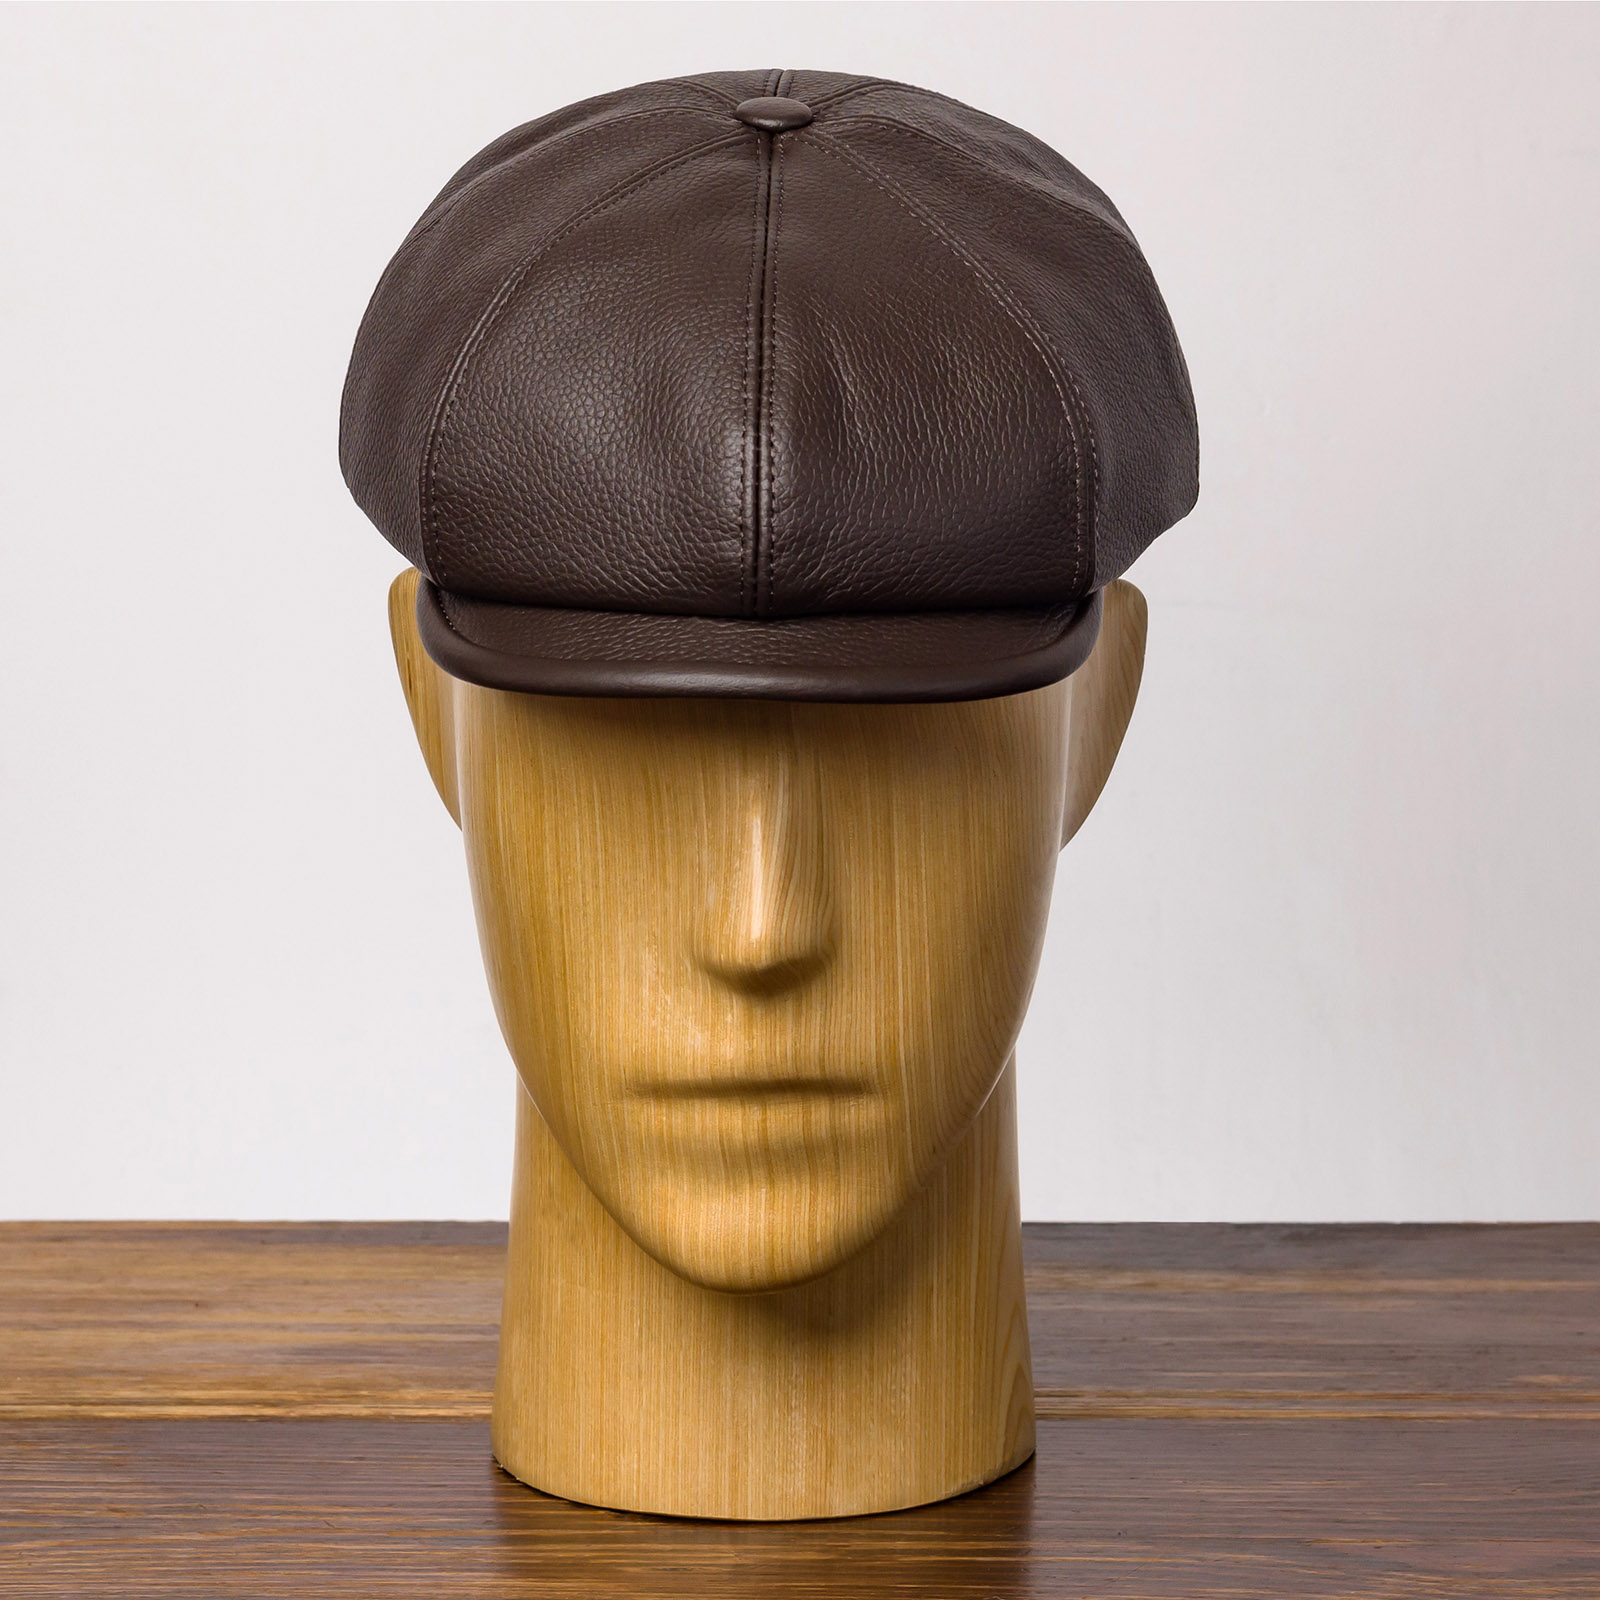 Natural leather flat cap 8 panels gatsby brian irish newsboy poor boy applejack baker boy scally crook hooligan ivy bandit skin